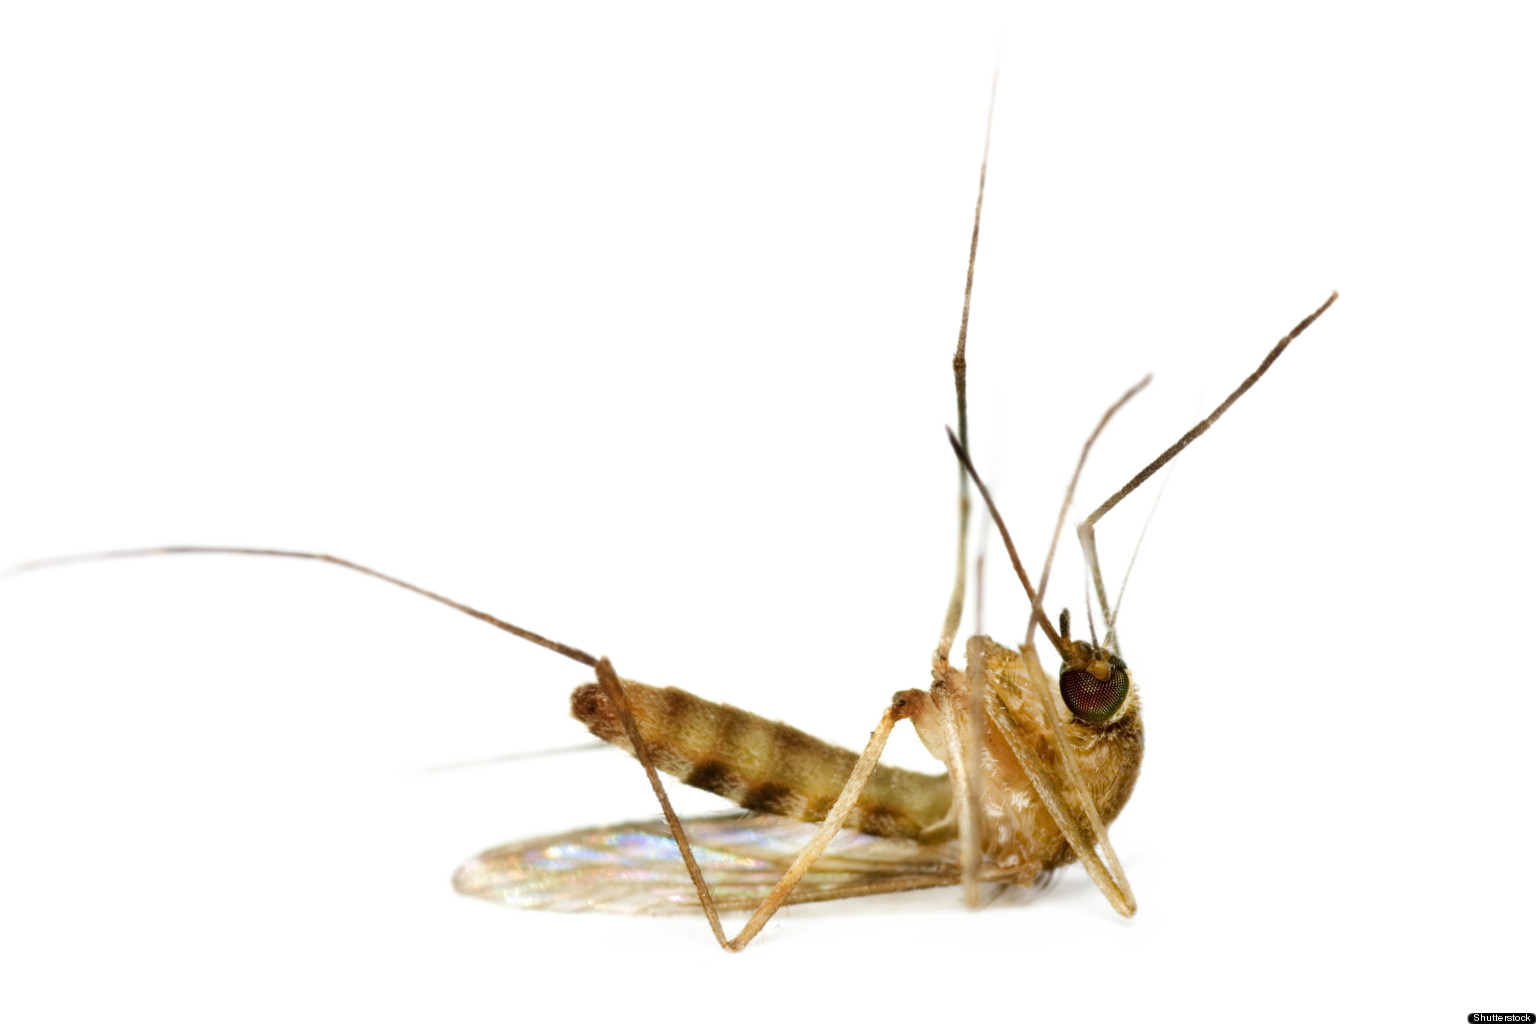 Insect clipart dead insect. Mosquito png images free